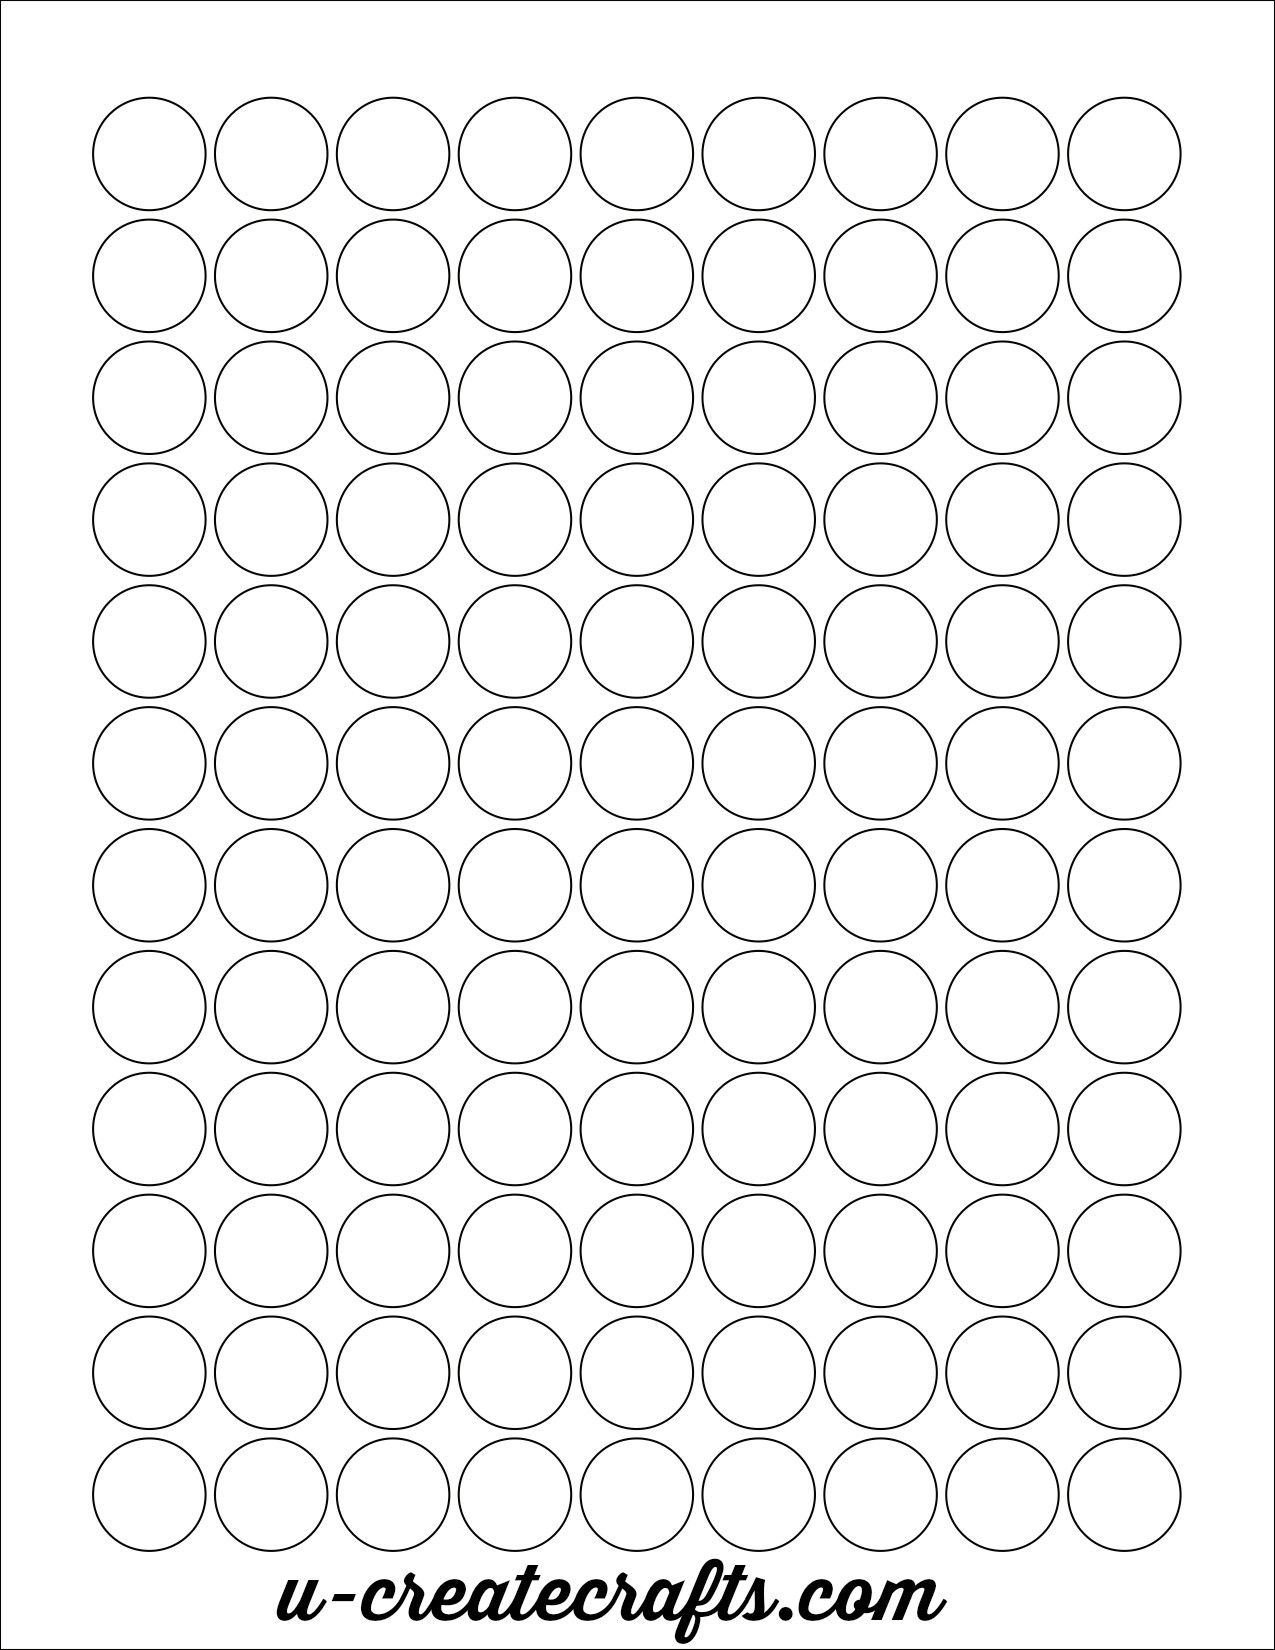 Hershey Kiss Labels Template How To Make Hershey Kisses Stickers Hershey Kisses Printable Labels Hershey Labels Hershey Kiss Labels